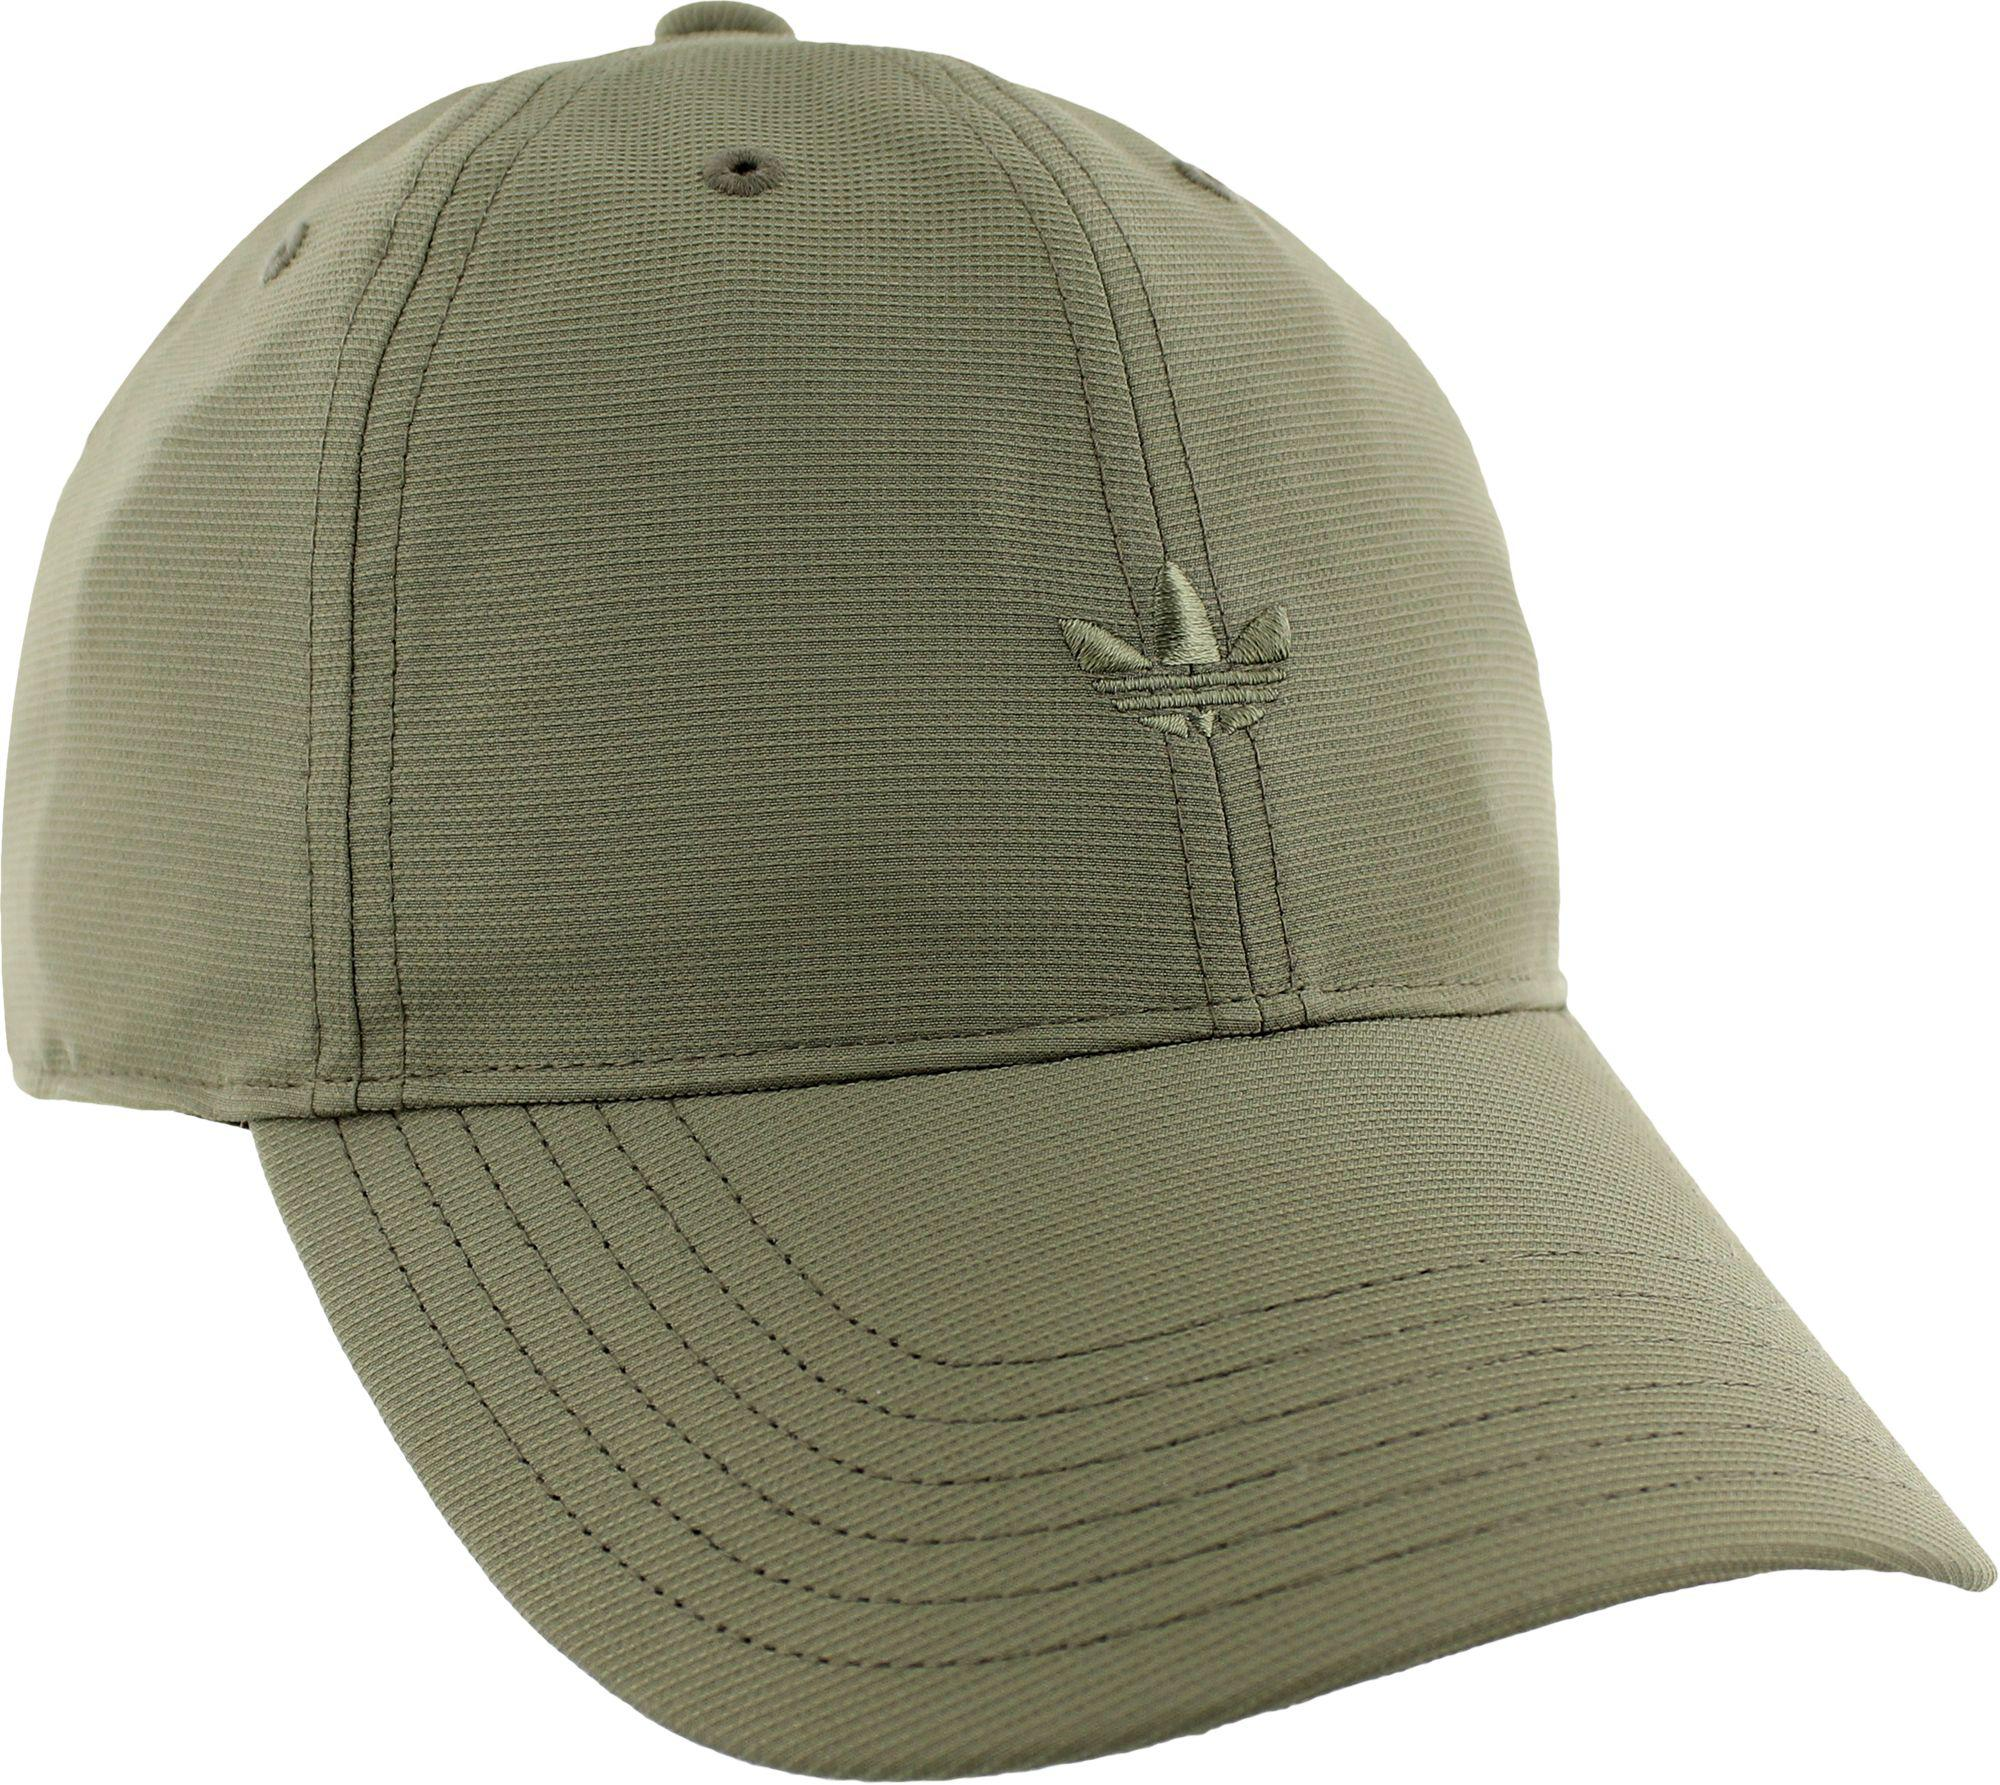 037570d826 Lyst - adidas Originals Originals Relaxed Modern Cap in Green for Men